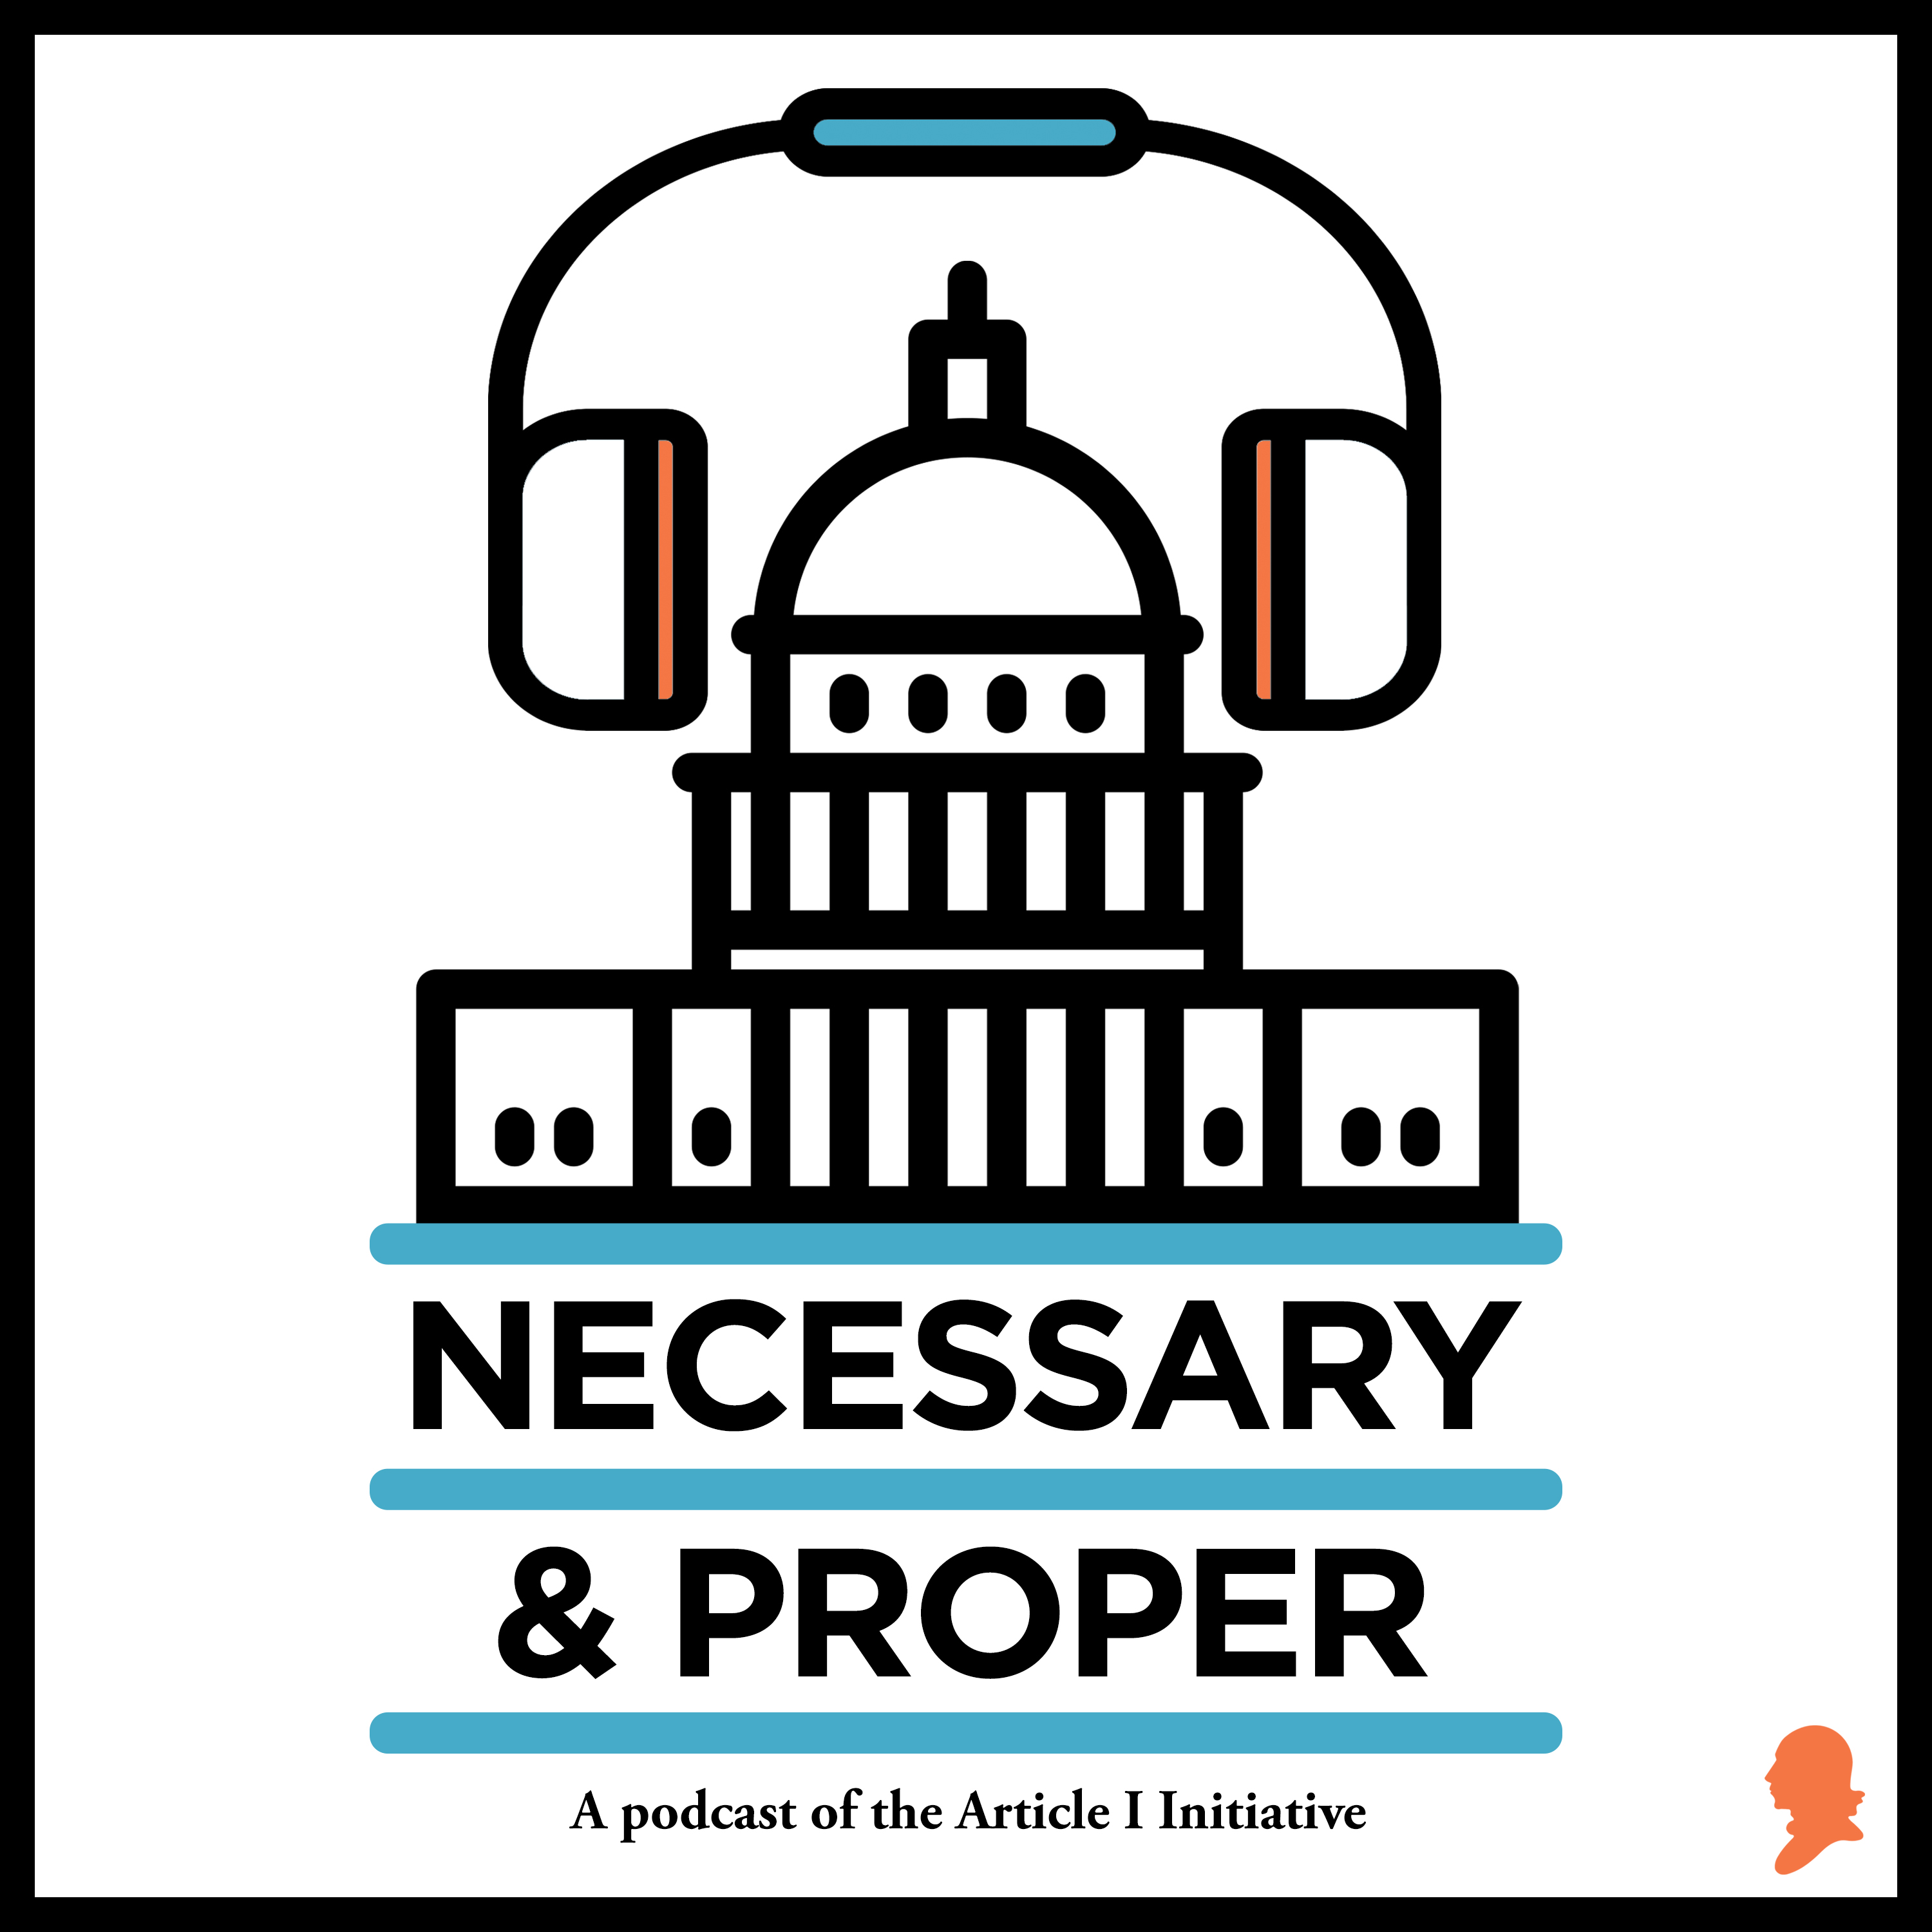 Necessary & Proper Episode 60: Supreme Court Nominations and the Perils of Court-Packing